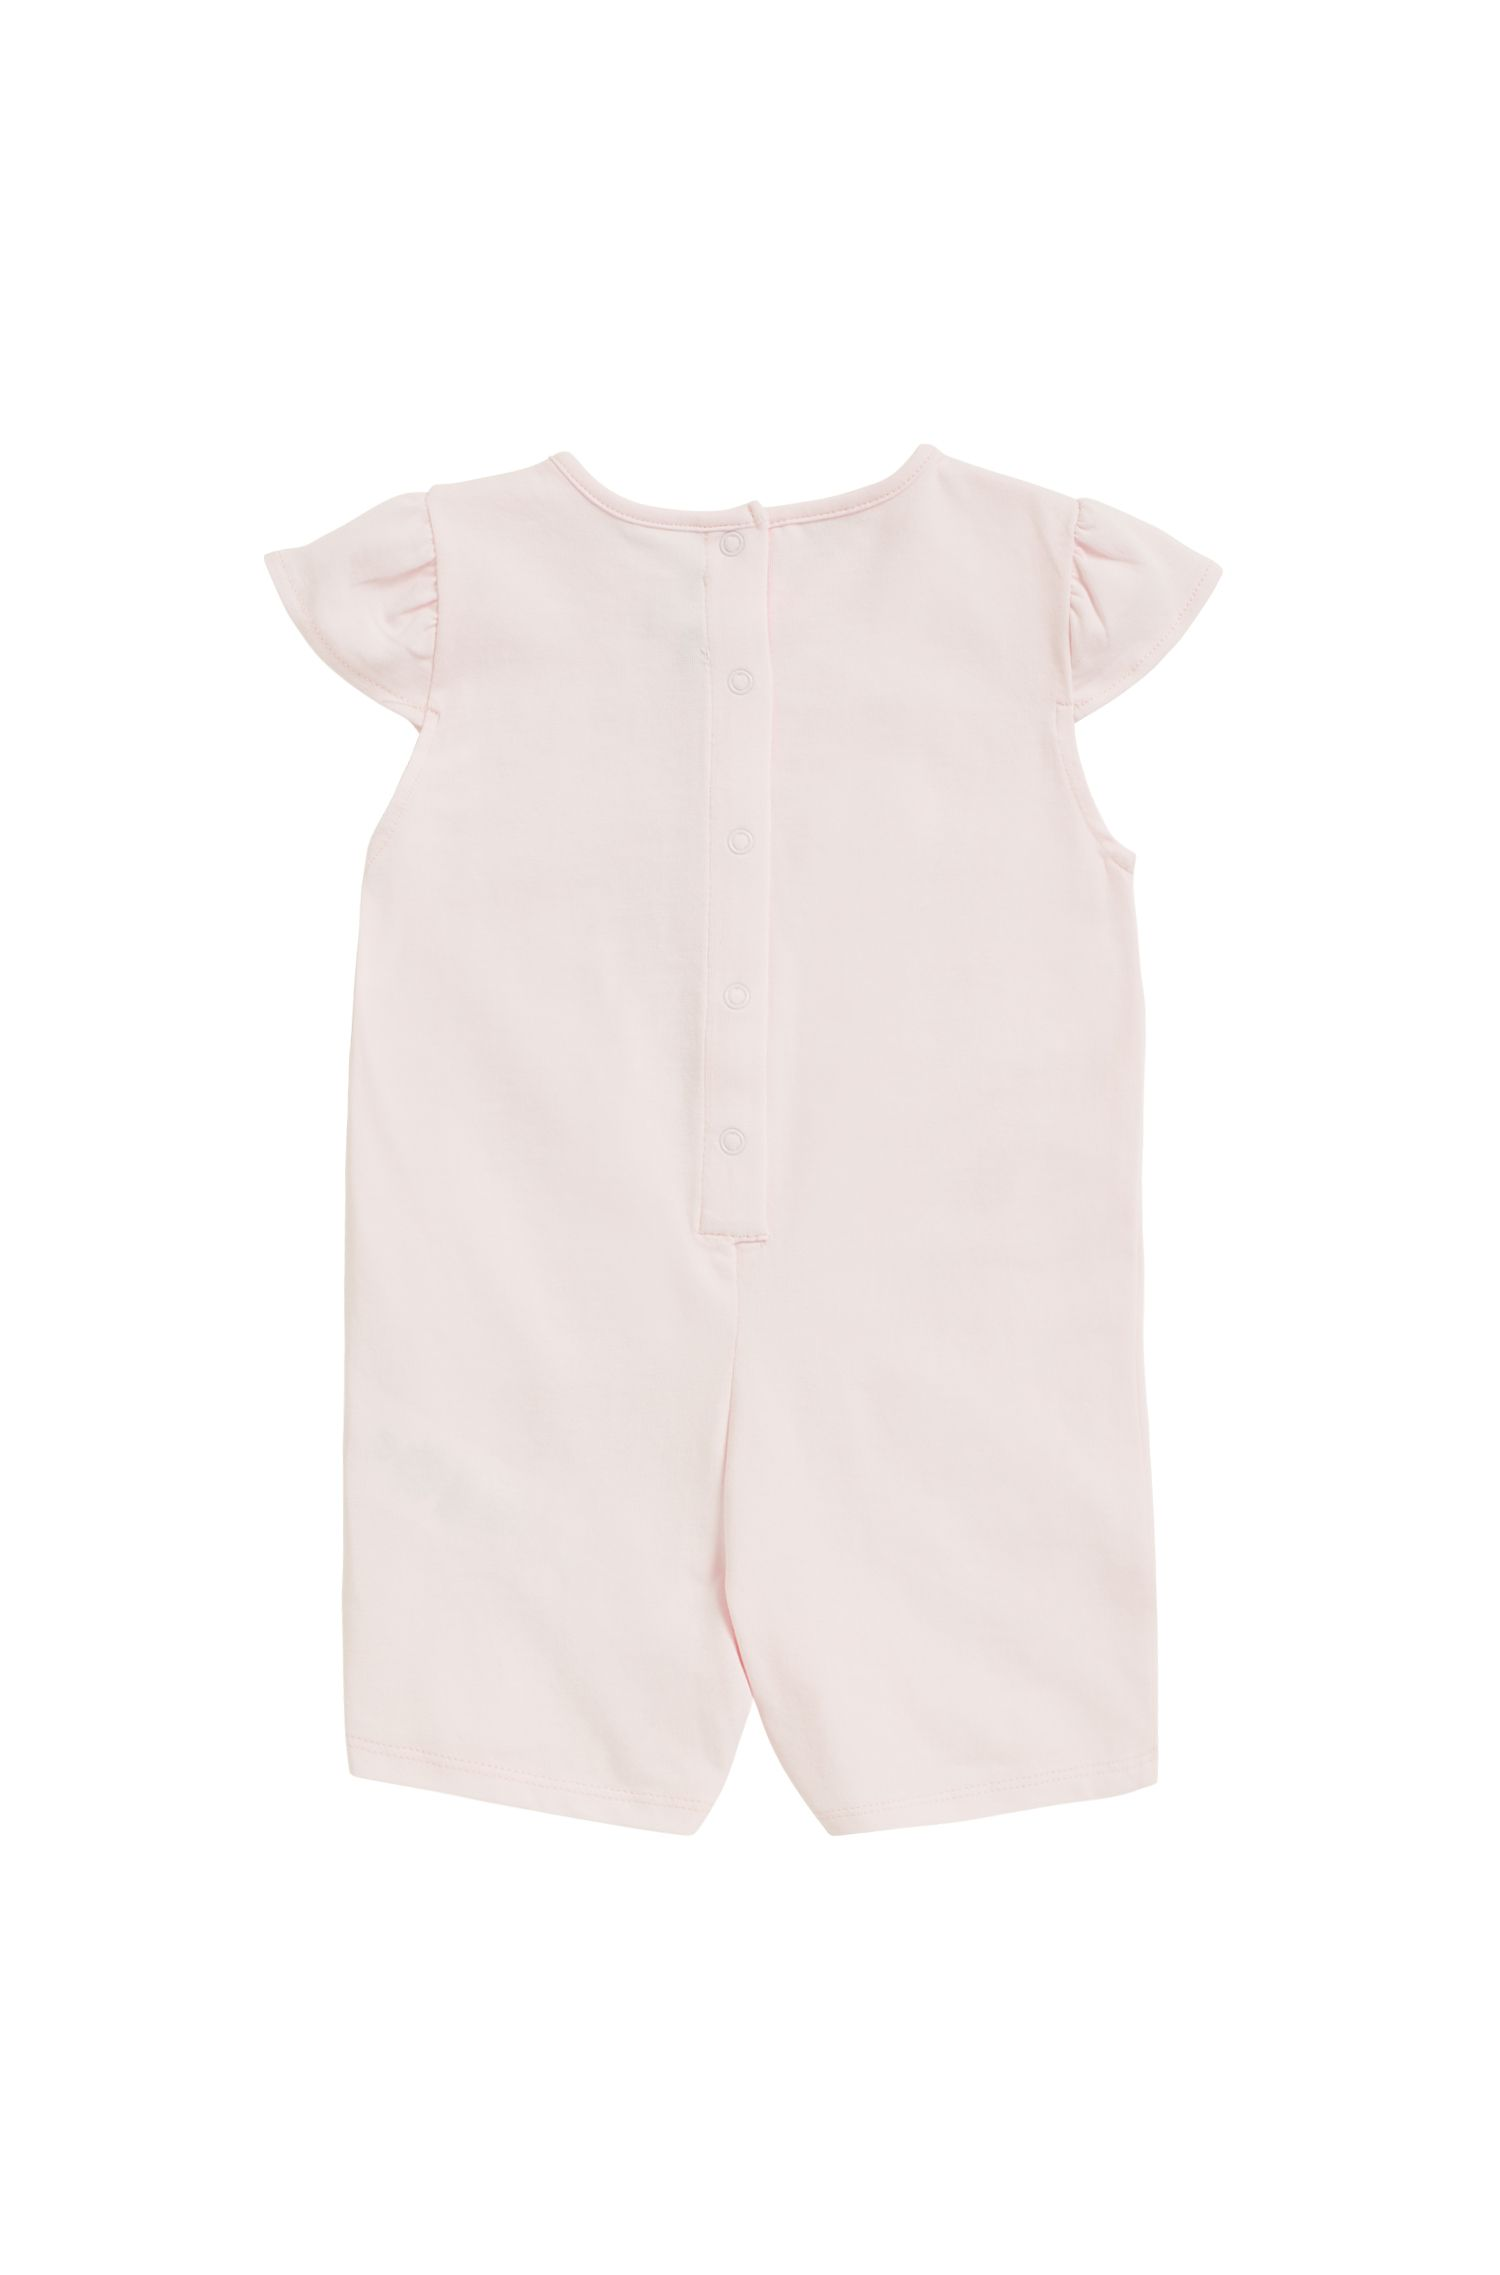 Baby playsuit in glittered stretch cotton